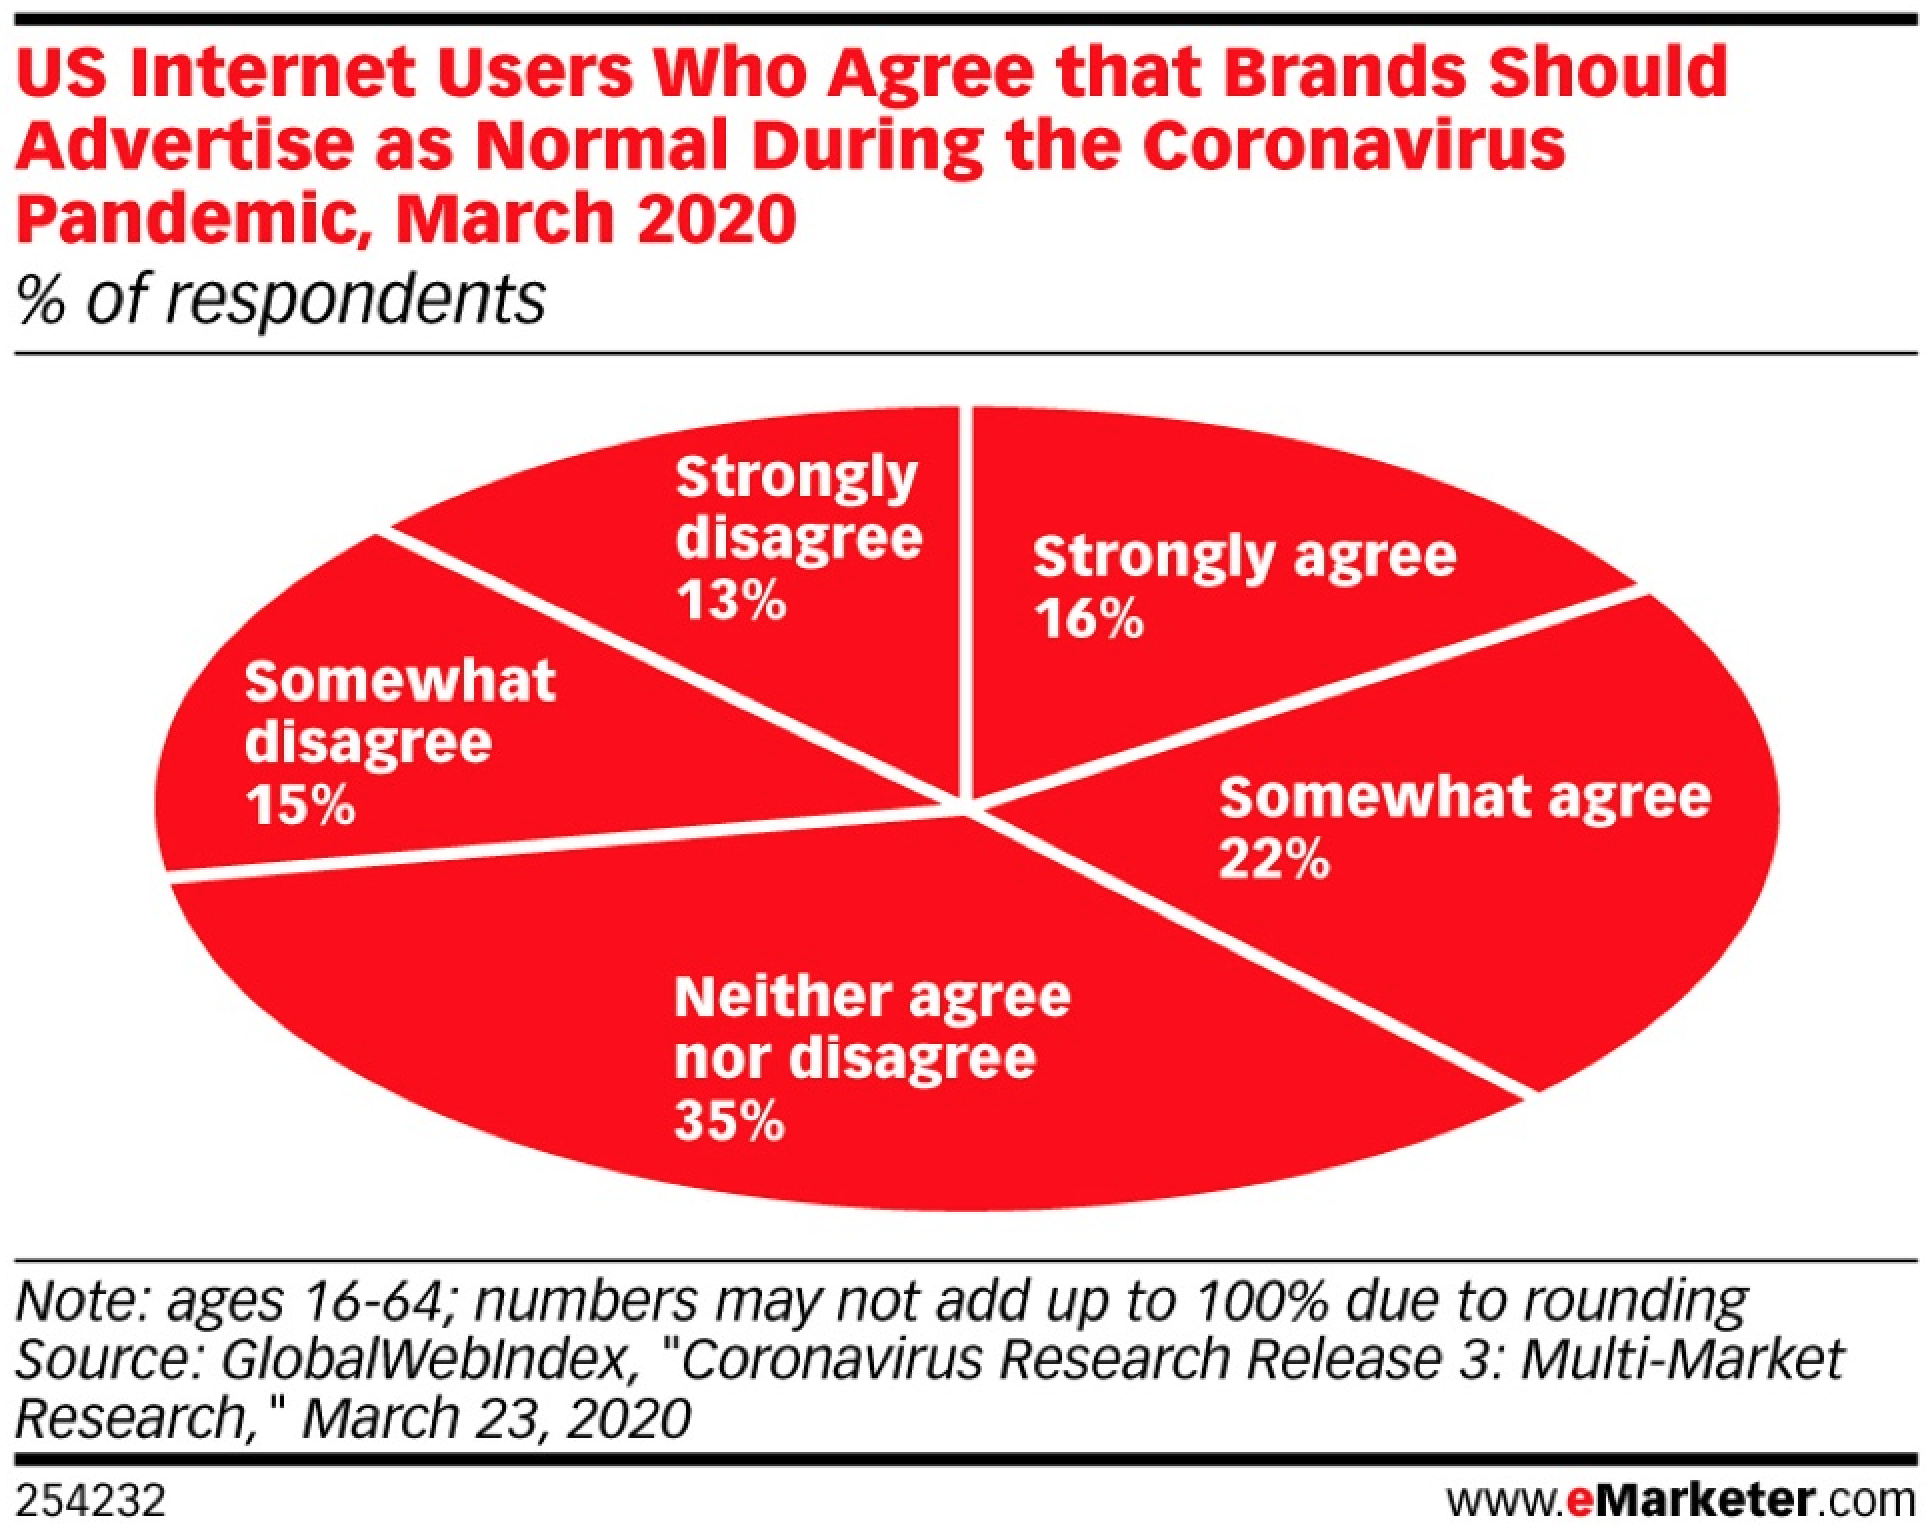 Chart showing that 22% and 16% percent of US internet users somewhat or strongly agree respectively that brands should advertise during the coronaviurs pandemic